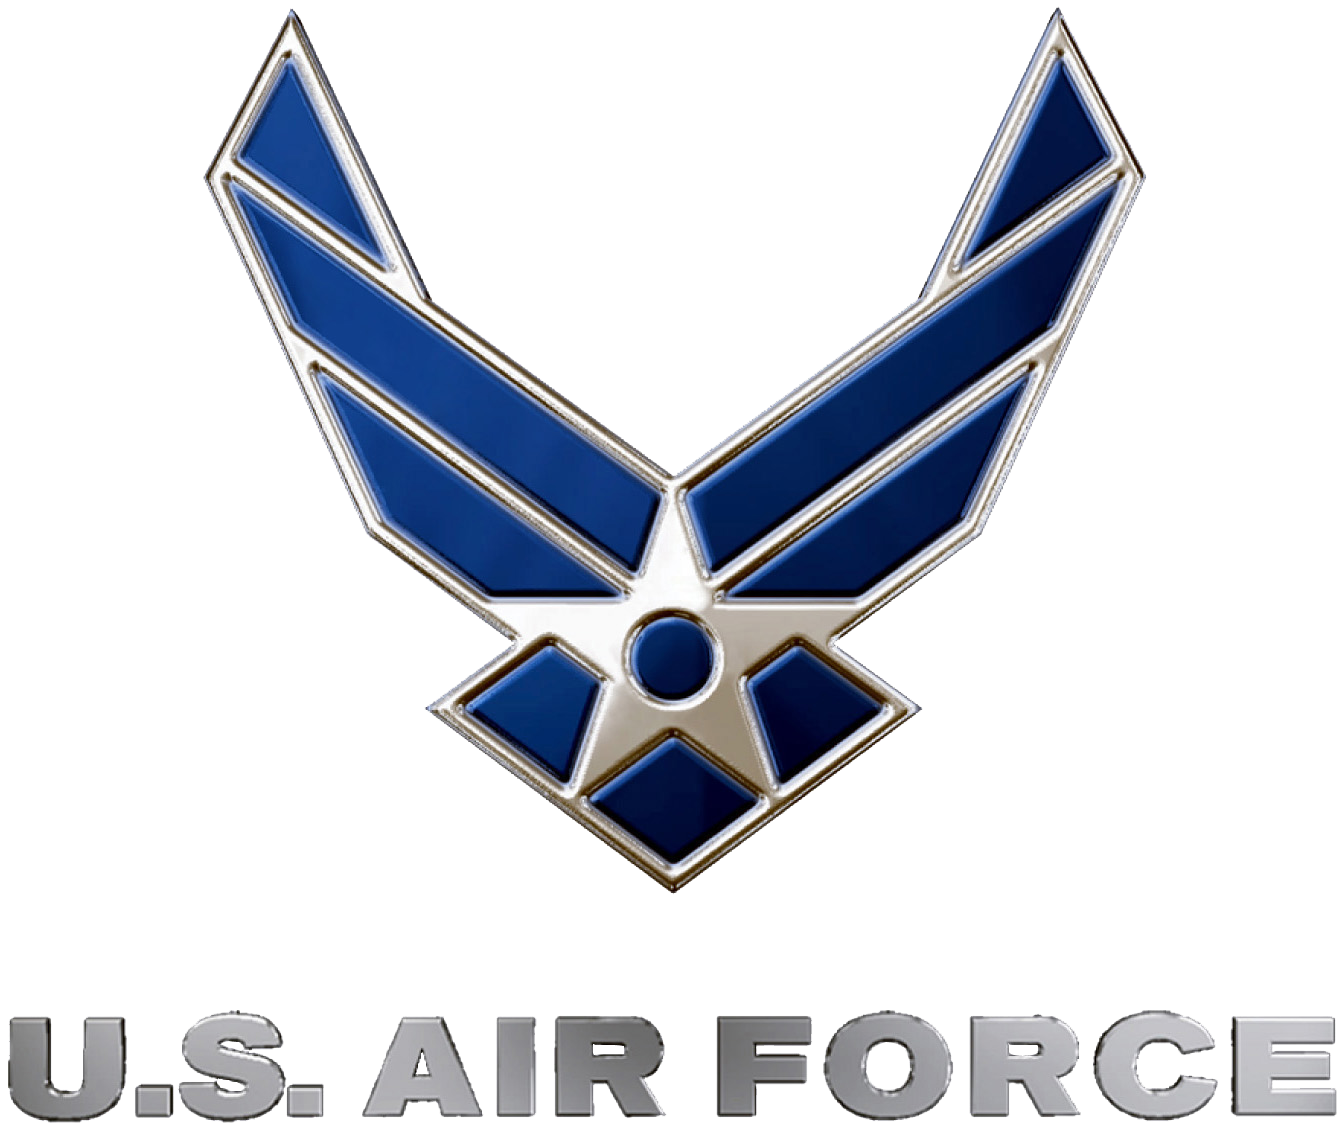 http://upload.wikimedia.org/wikipedia/commons/6/69/USAF_logo.png